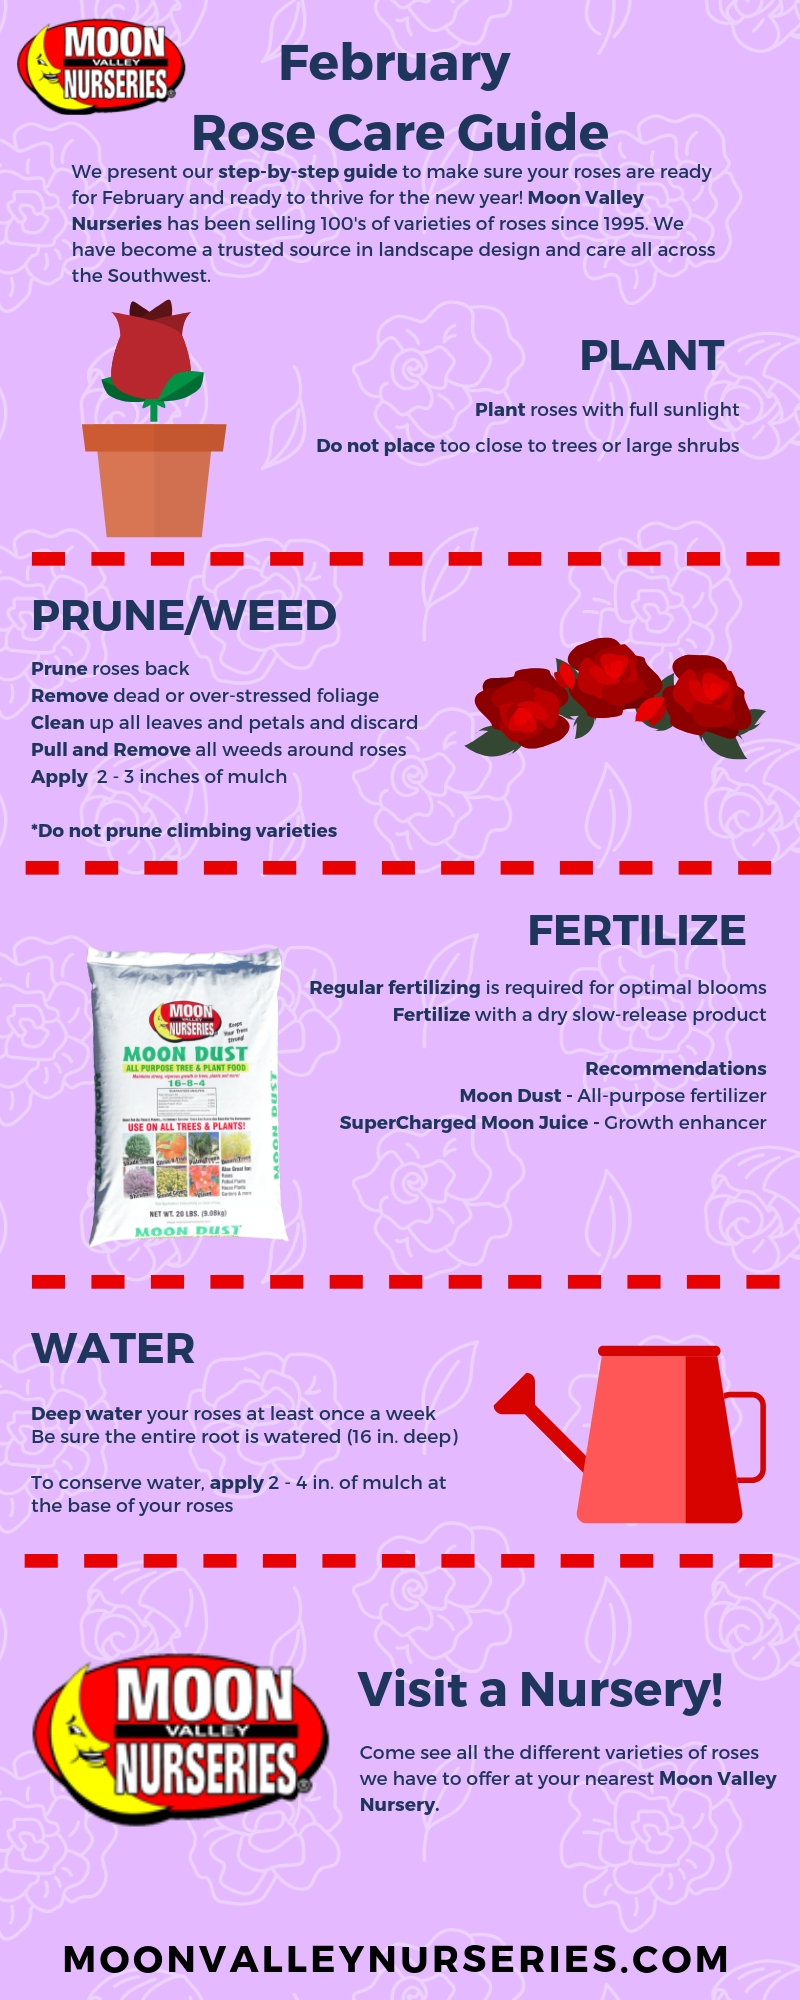 February Rose Care Guide